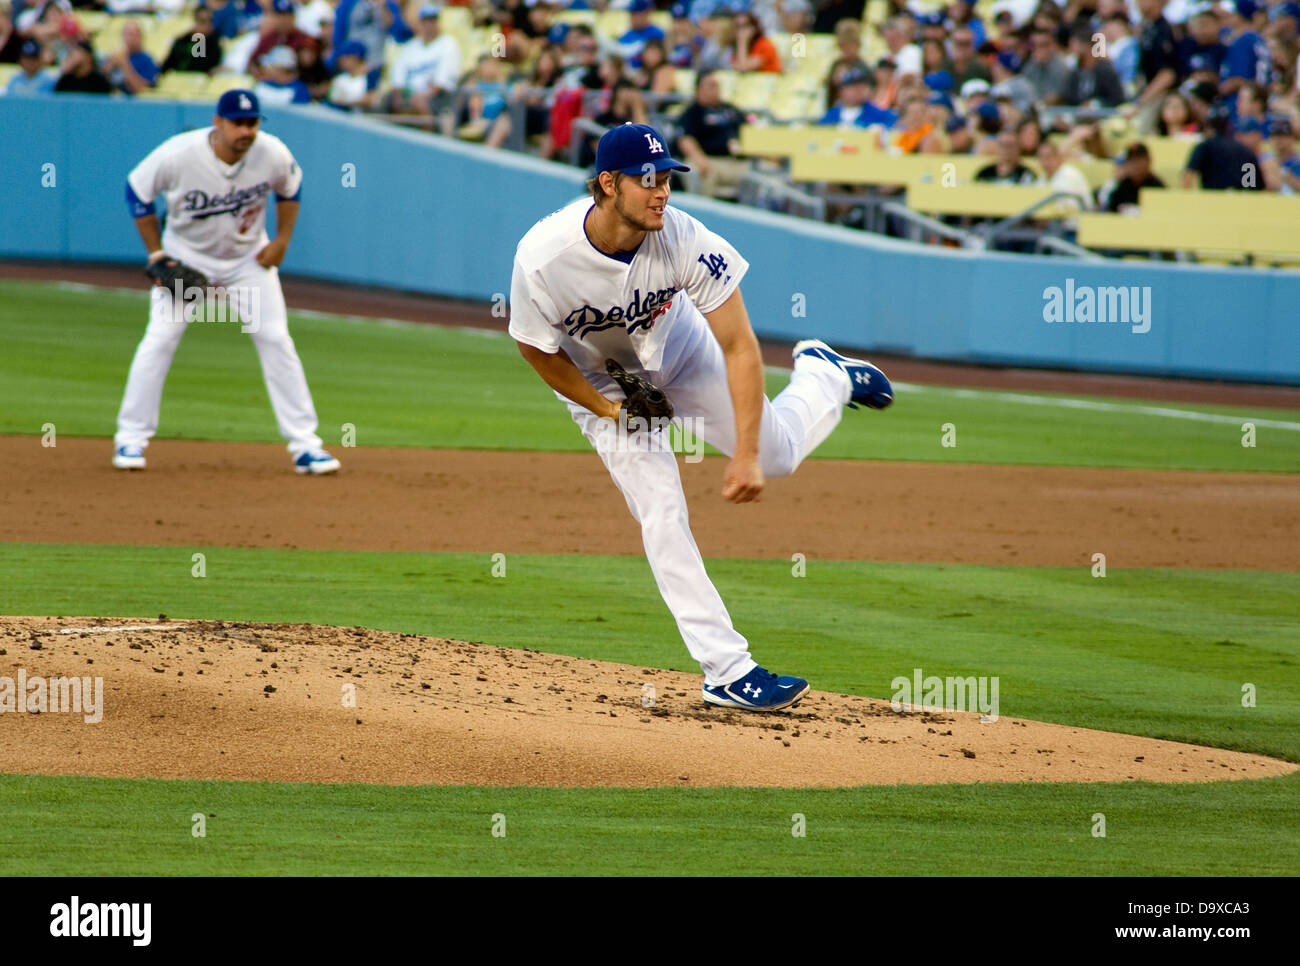 Los Angeles Dodgers pitcher Clayton Kershaw in game at Dodger Stadium - Stock Image